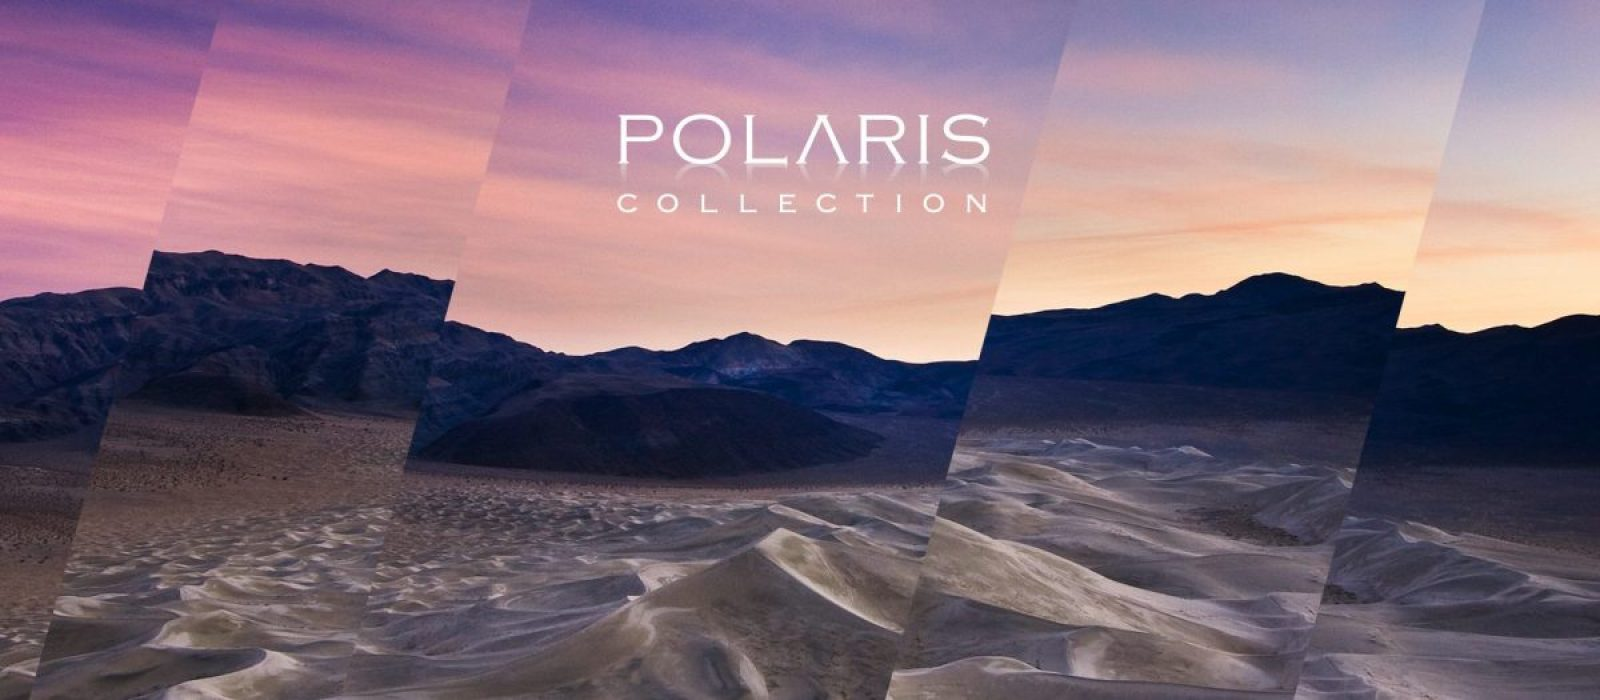 POLARIS COLLECTION